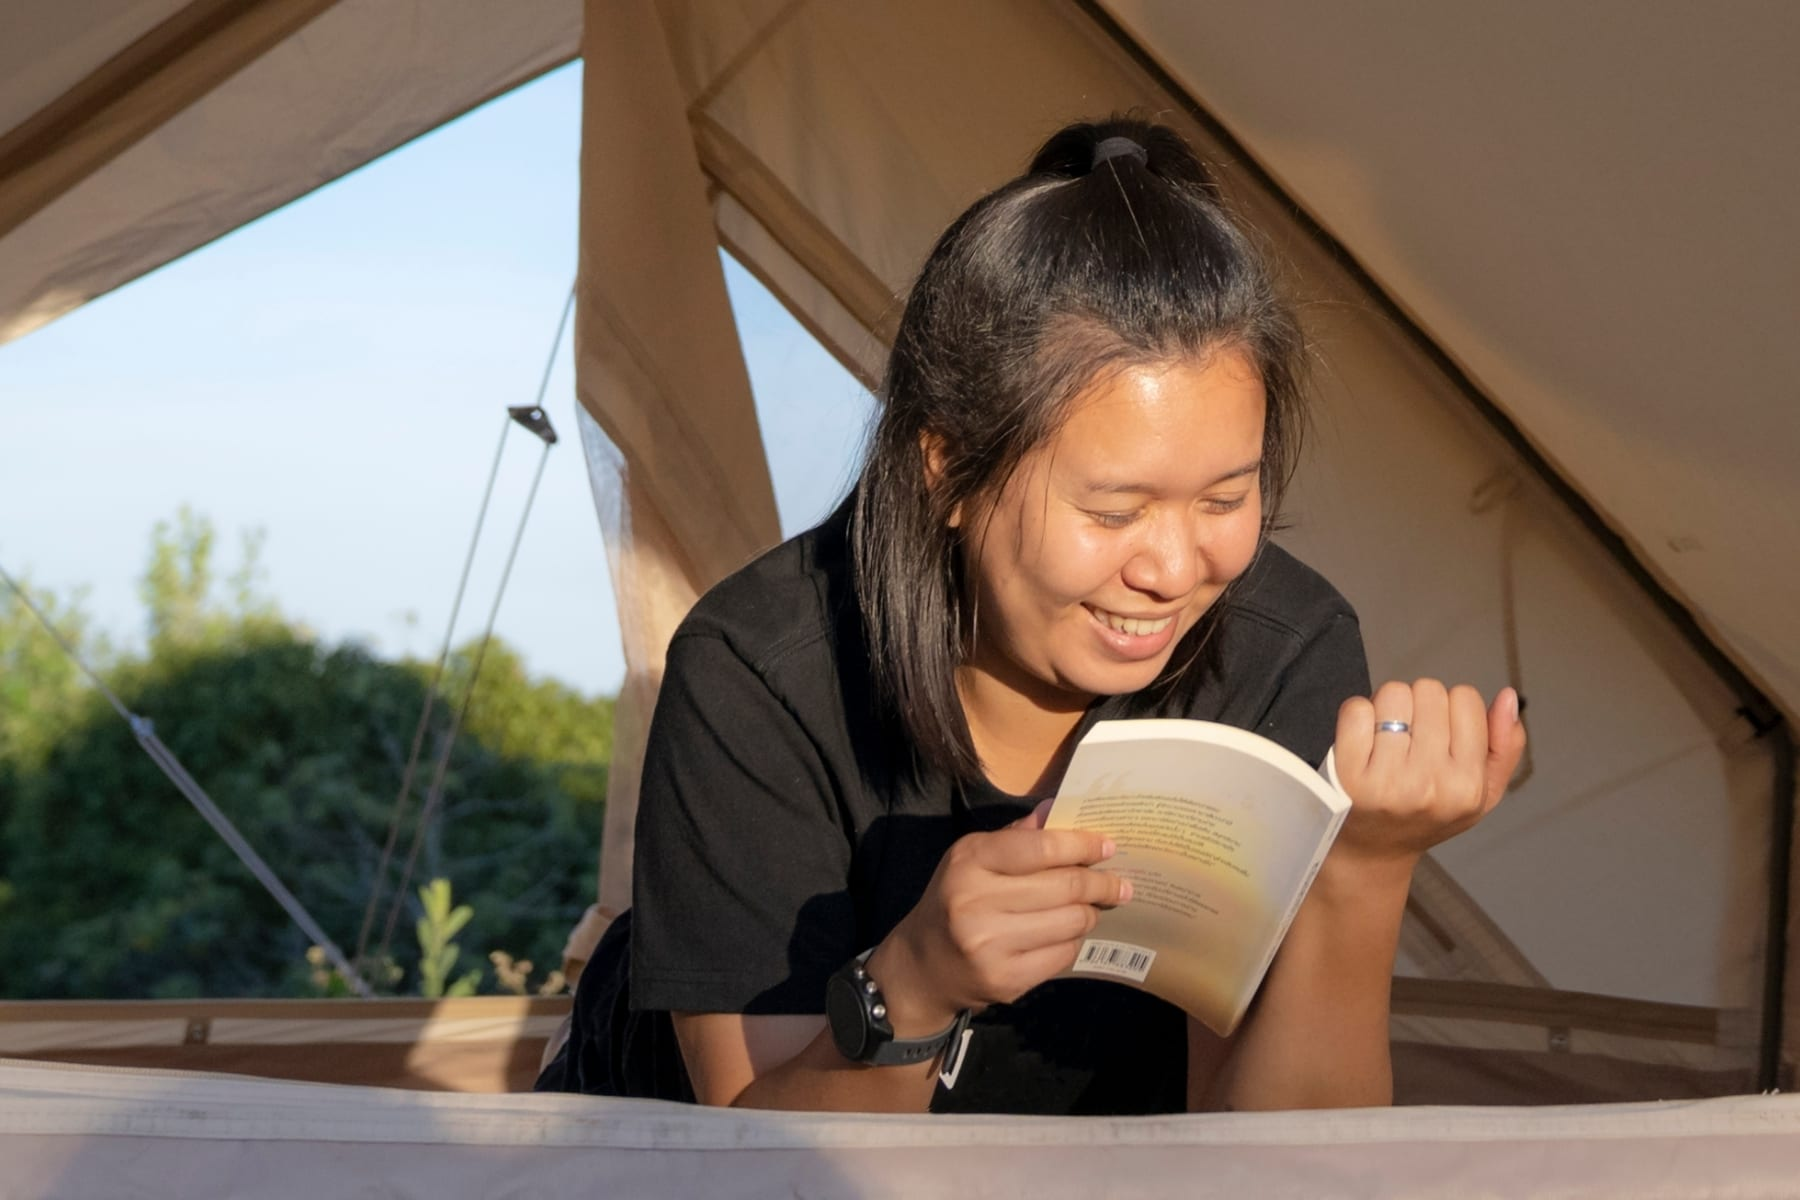 A woman reading a book in a tent.